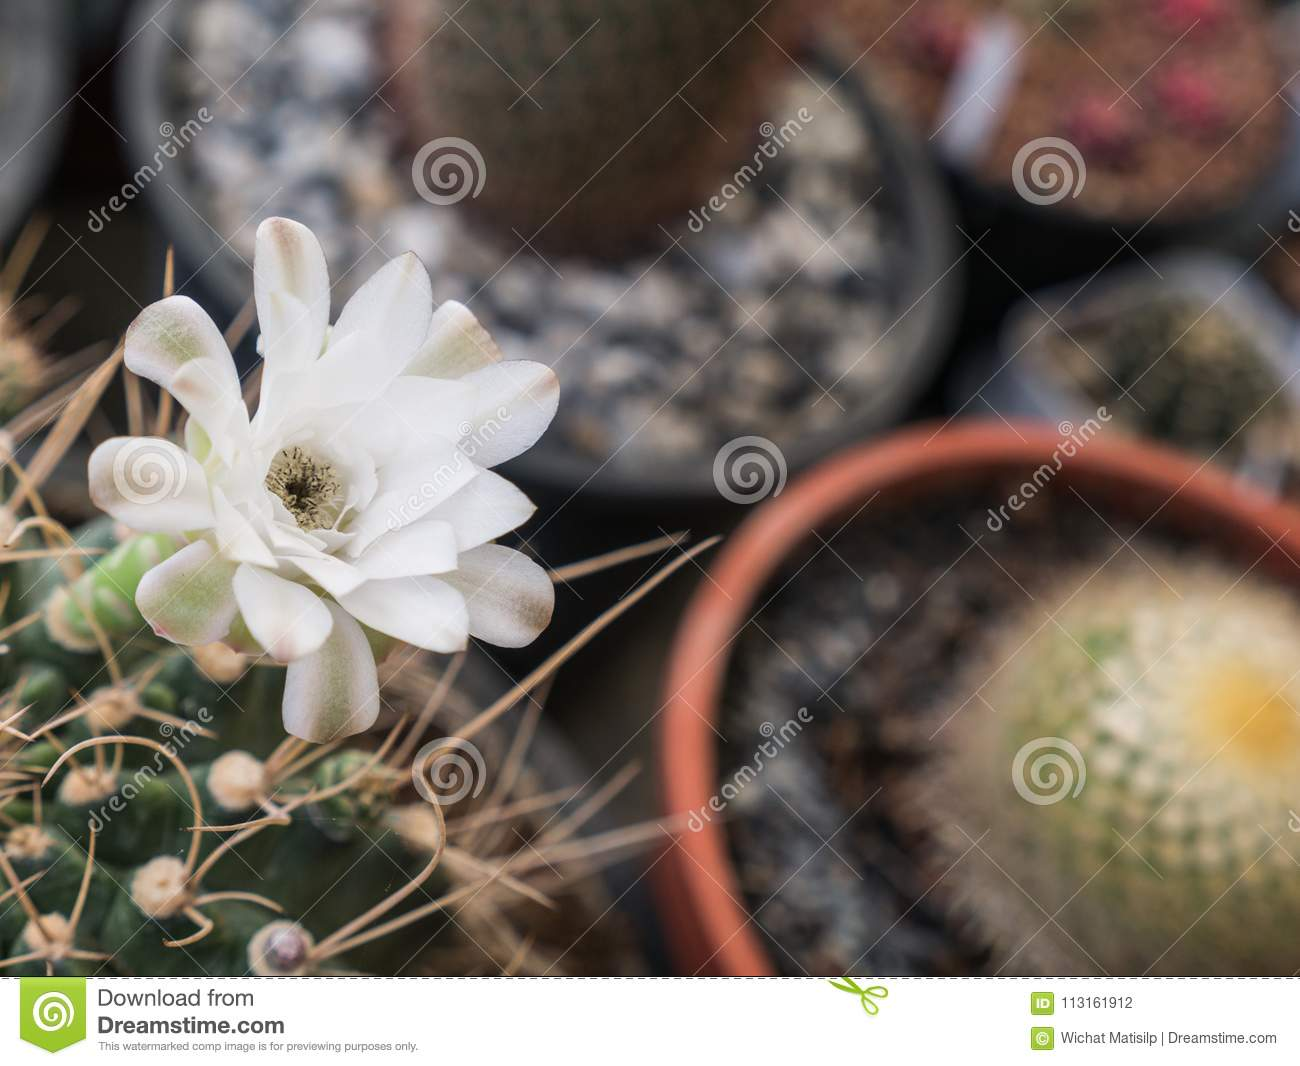 White Cactus Flower Blooming Stock Photo Image Of Cactus Home